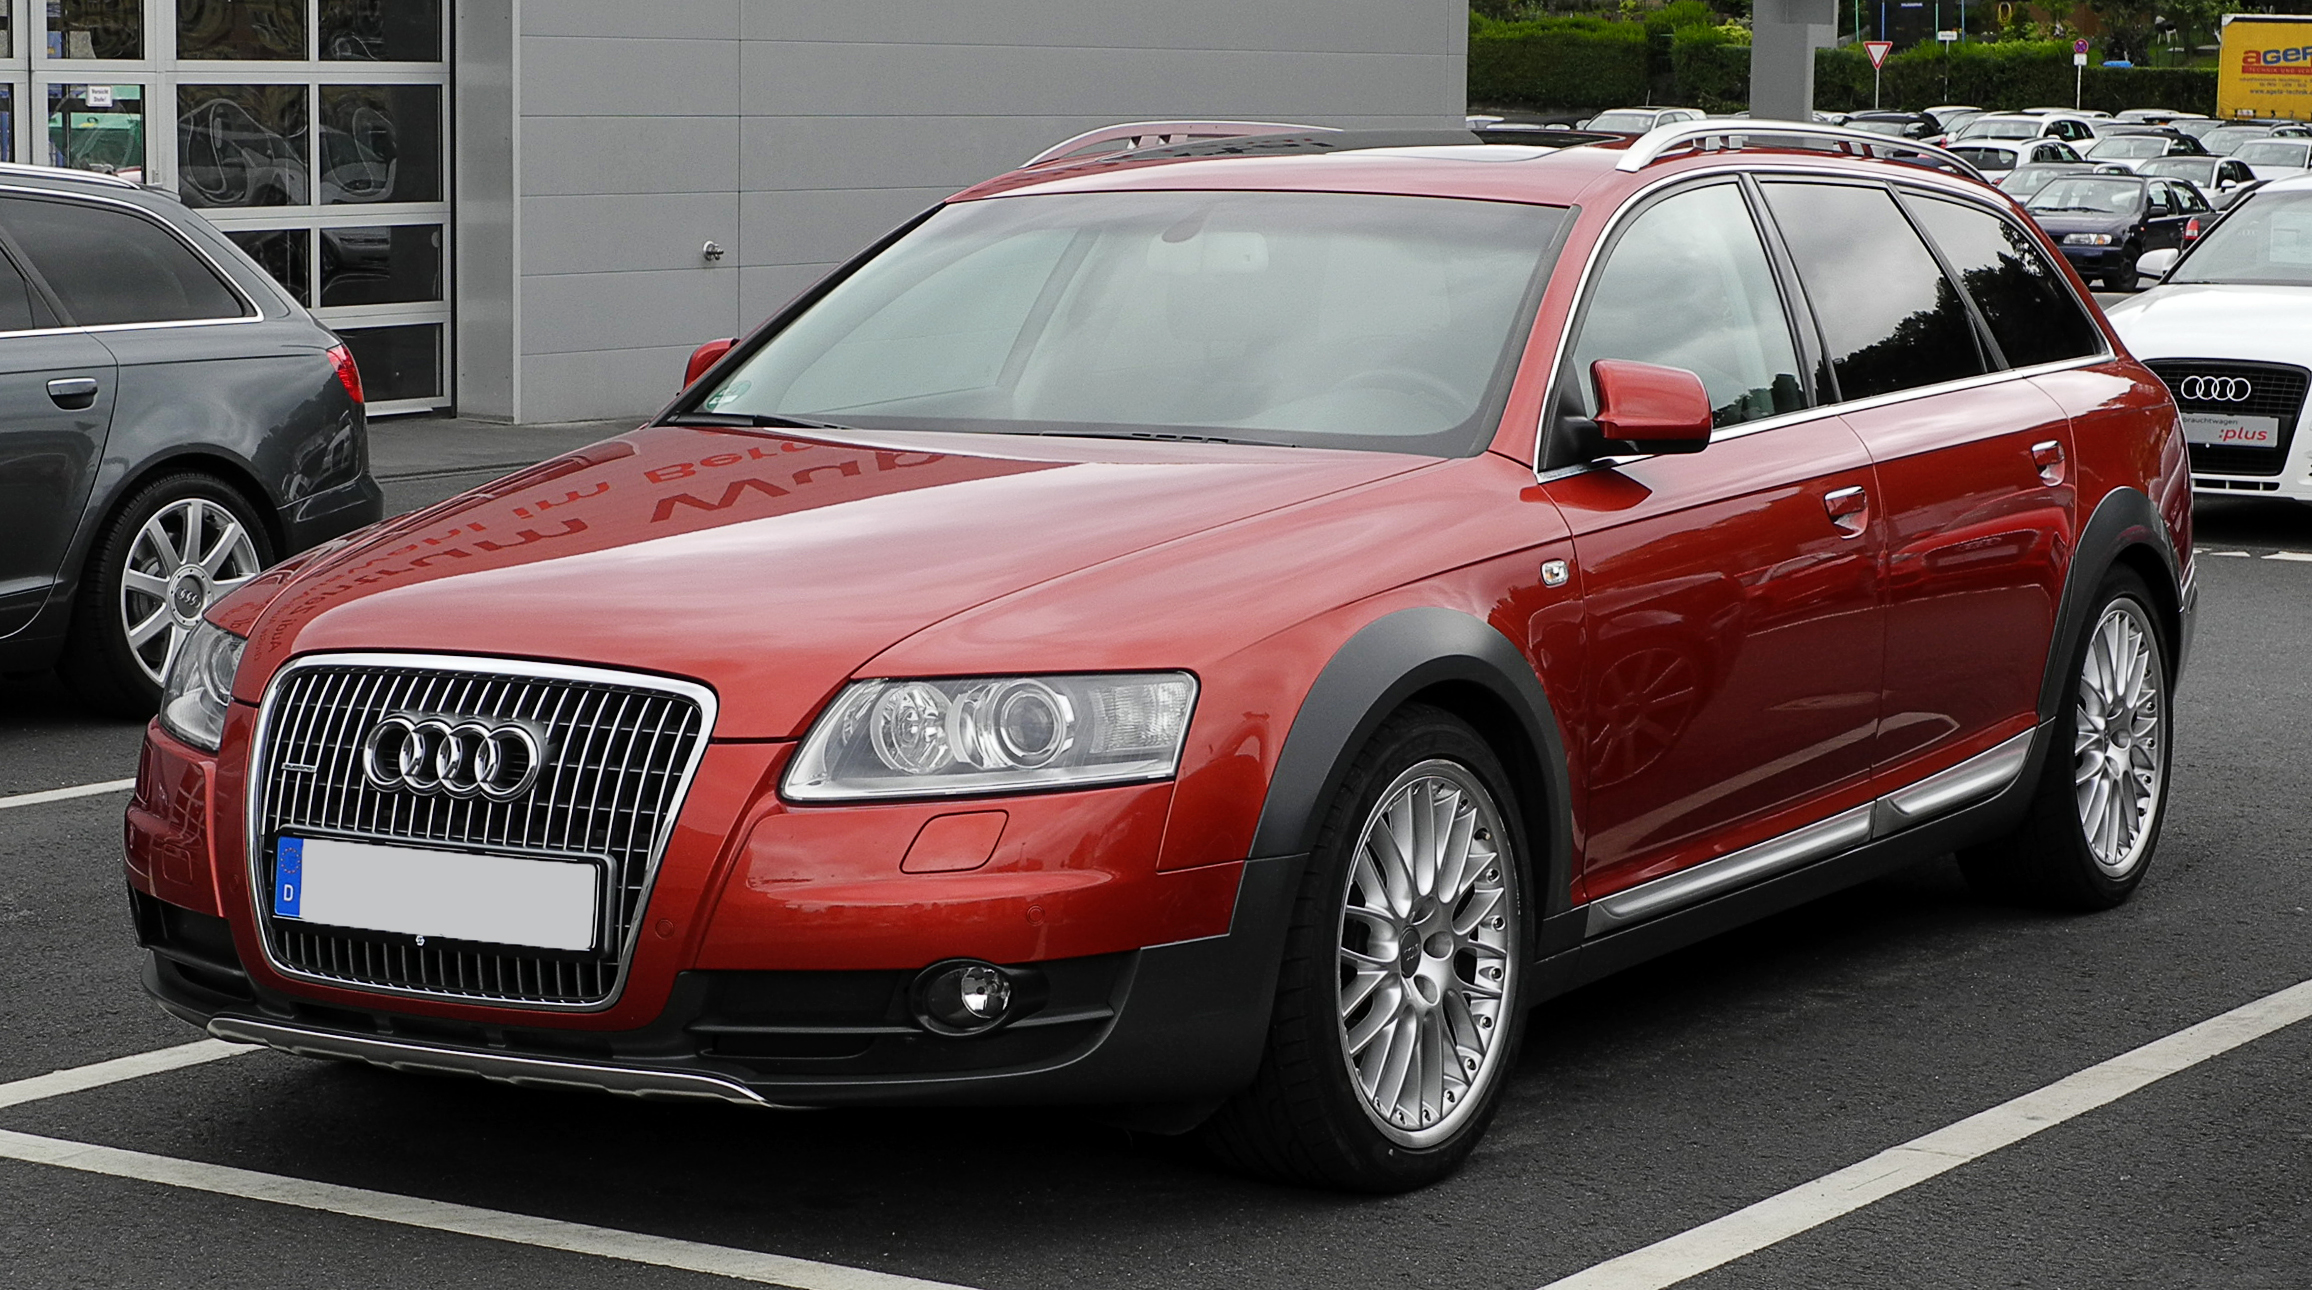 Audi A6 Allroad Tdi Reviews Audi A6 Allroad Tdi Car Reviews